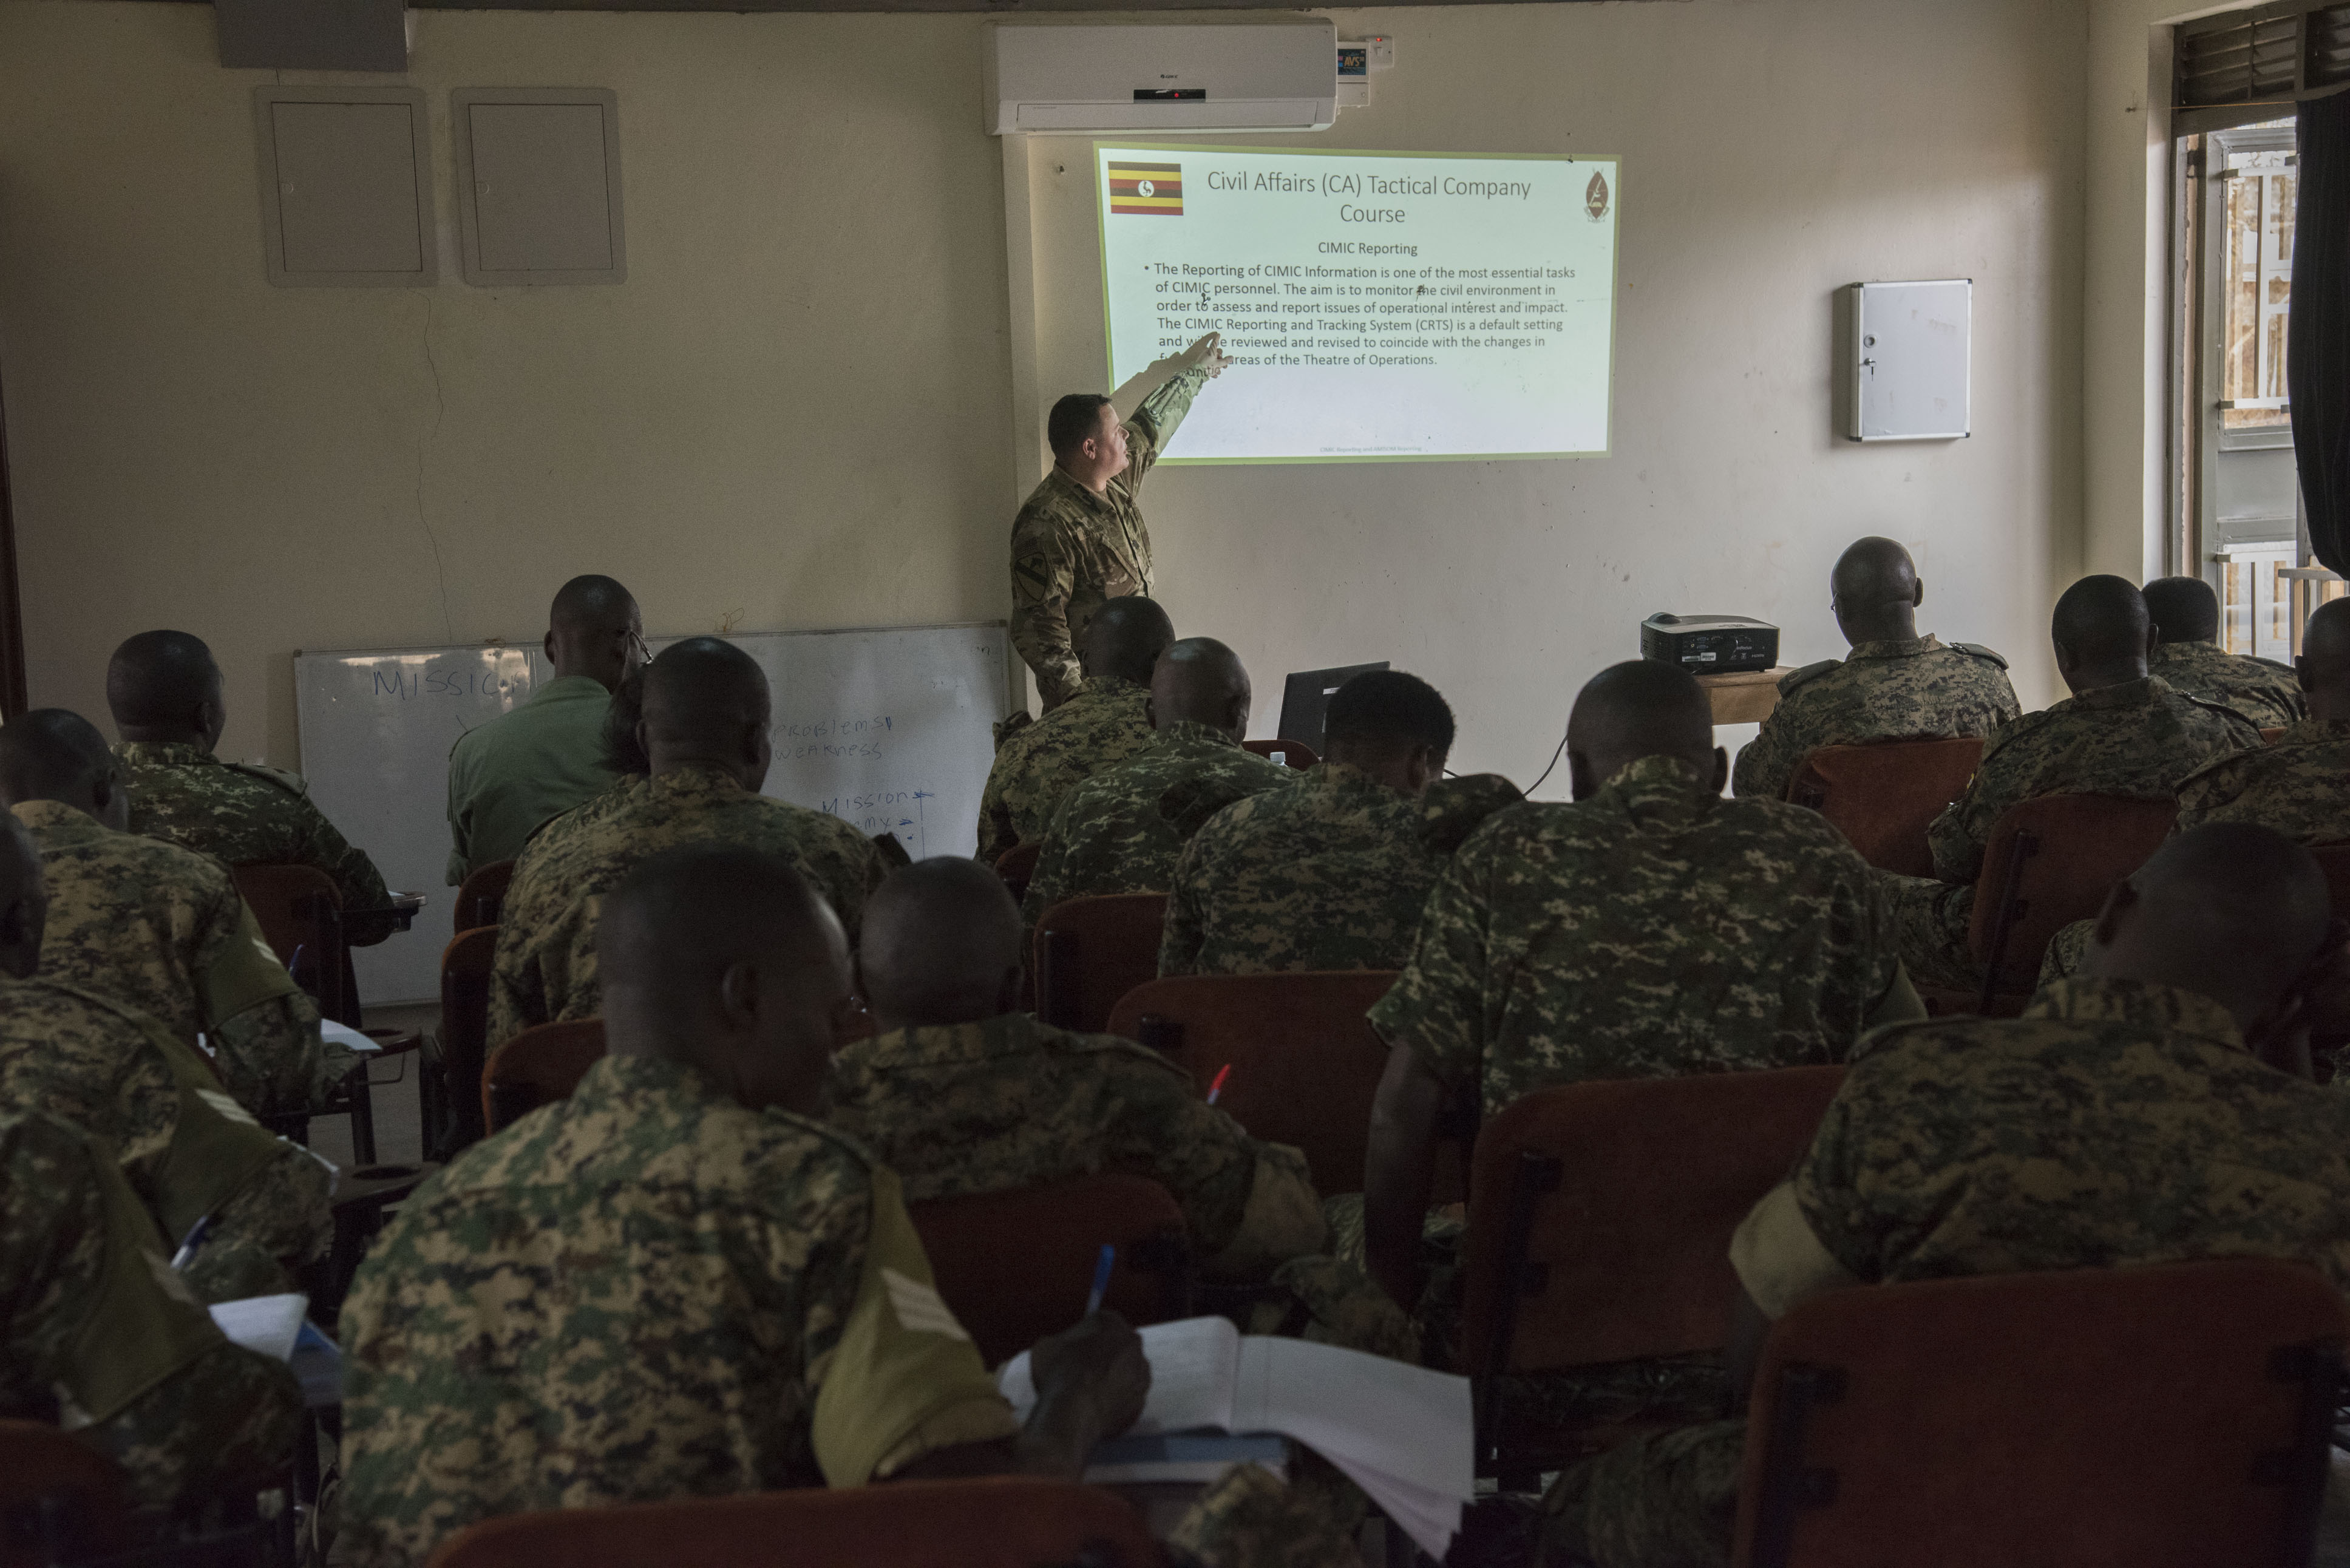 U.S. Army Capt. Raphael Howard III, assigned to the 407th Civil Affairs (CA) Battalion, attached to the Combined Joint Task Force - Horn of Africa, teaches a Civil-Military (CIMIC) reporting class to soldiers from the Uganda People's Defence Force (UPDF) as part of a Civil Affairs Tactical Company Course held at Camp Singo, Uganda, Feb. 08, 2018.  CJTF-HOA service members are forward deployed to Camp Singo to advise and assist the UPDF in preparing Ugandan Battle Group 25 for an upcoming deployment in support of the African Union Mission in Somalia (AMISOM). (U.S. Air National Guard photo by Staff Sgt. Allyson L. Manners)